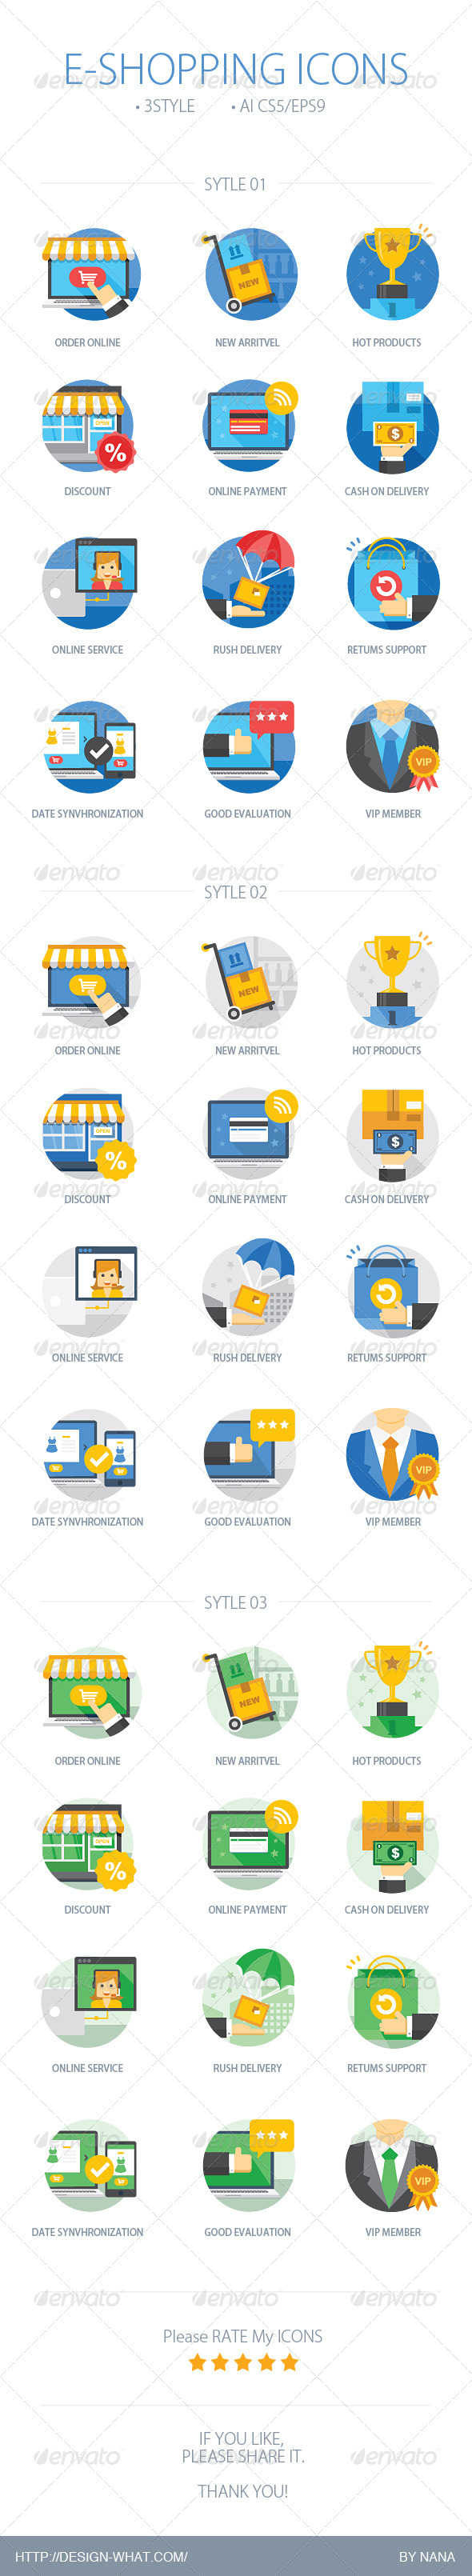 GraphicRiver E-Shopping Icons 7391032